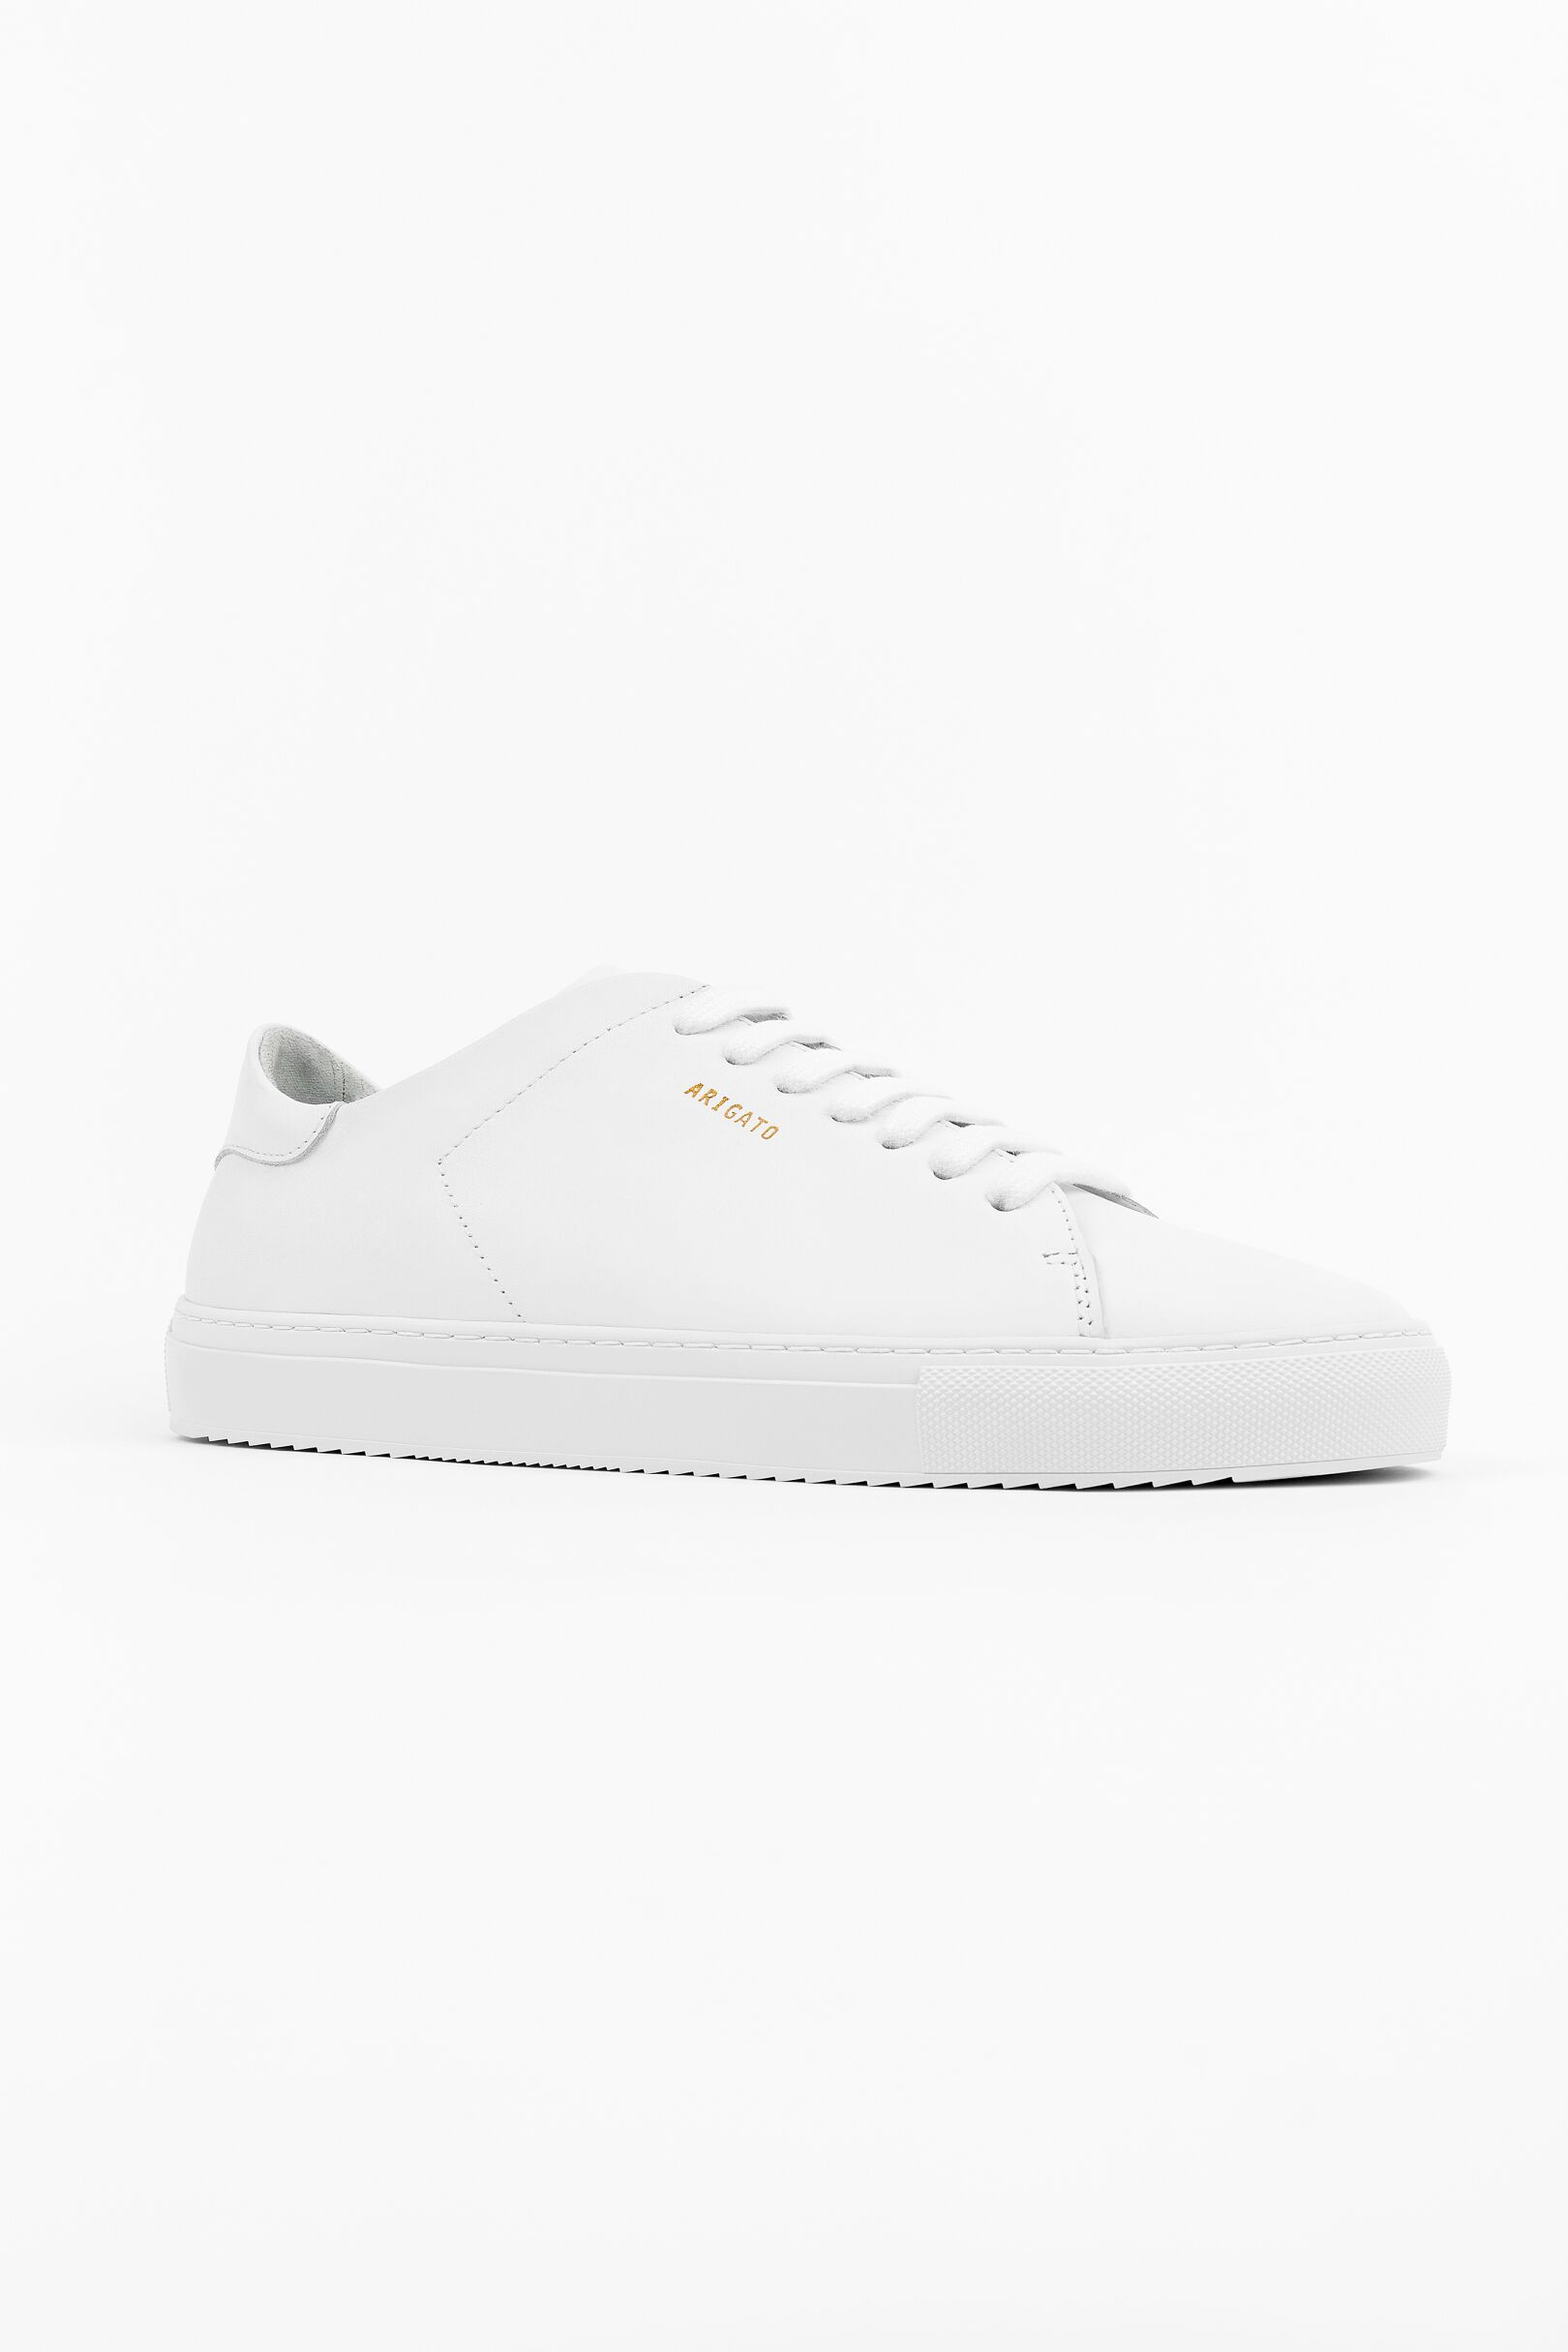 Axel Arigato Clean 90 Trainers $230.00